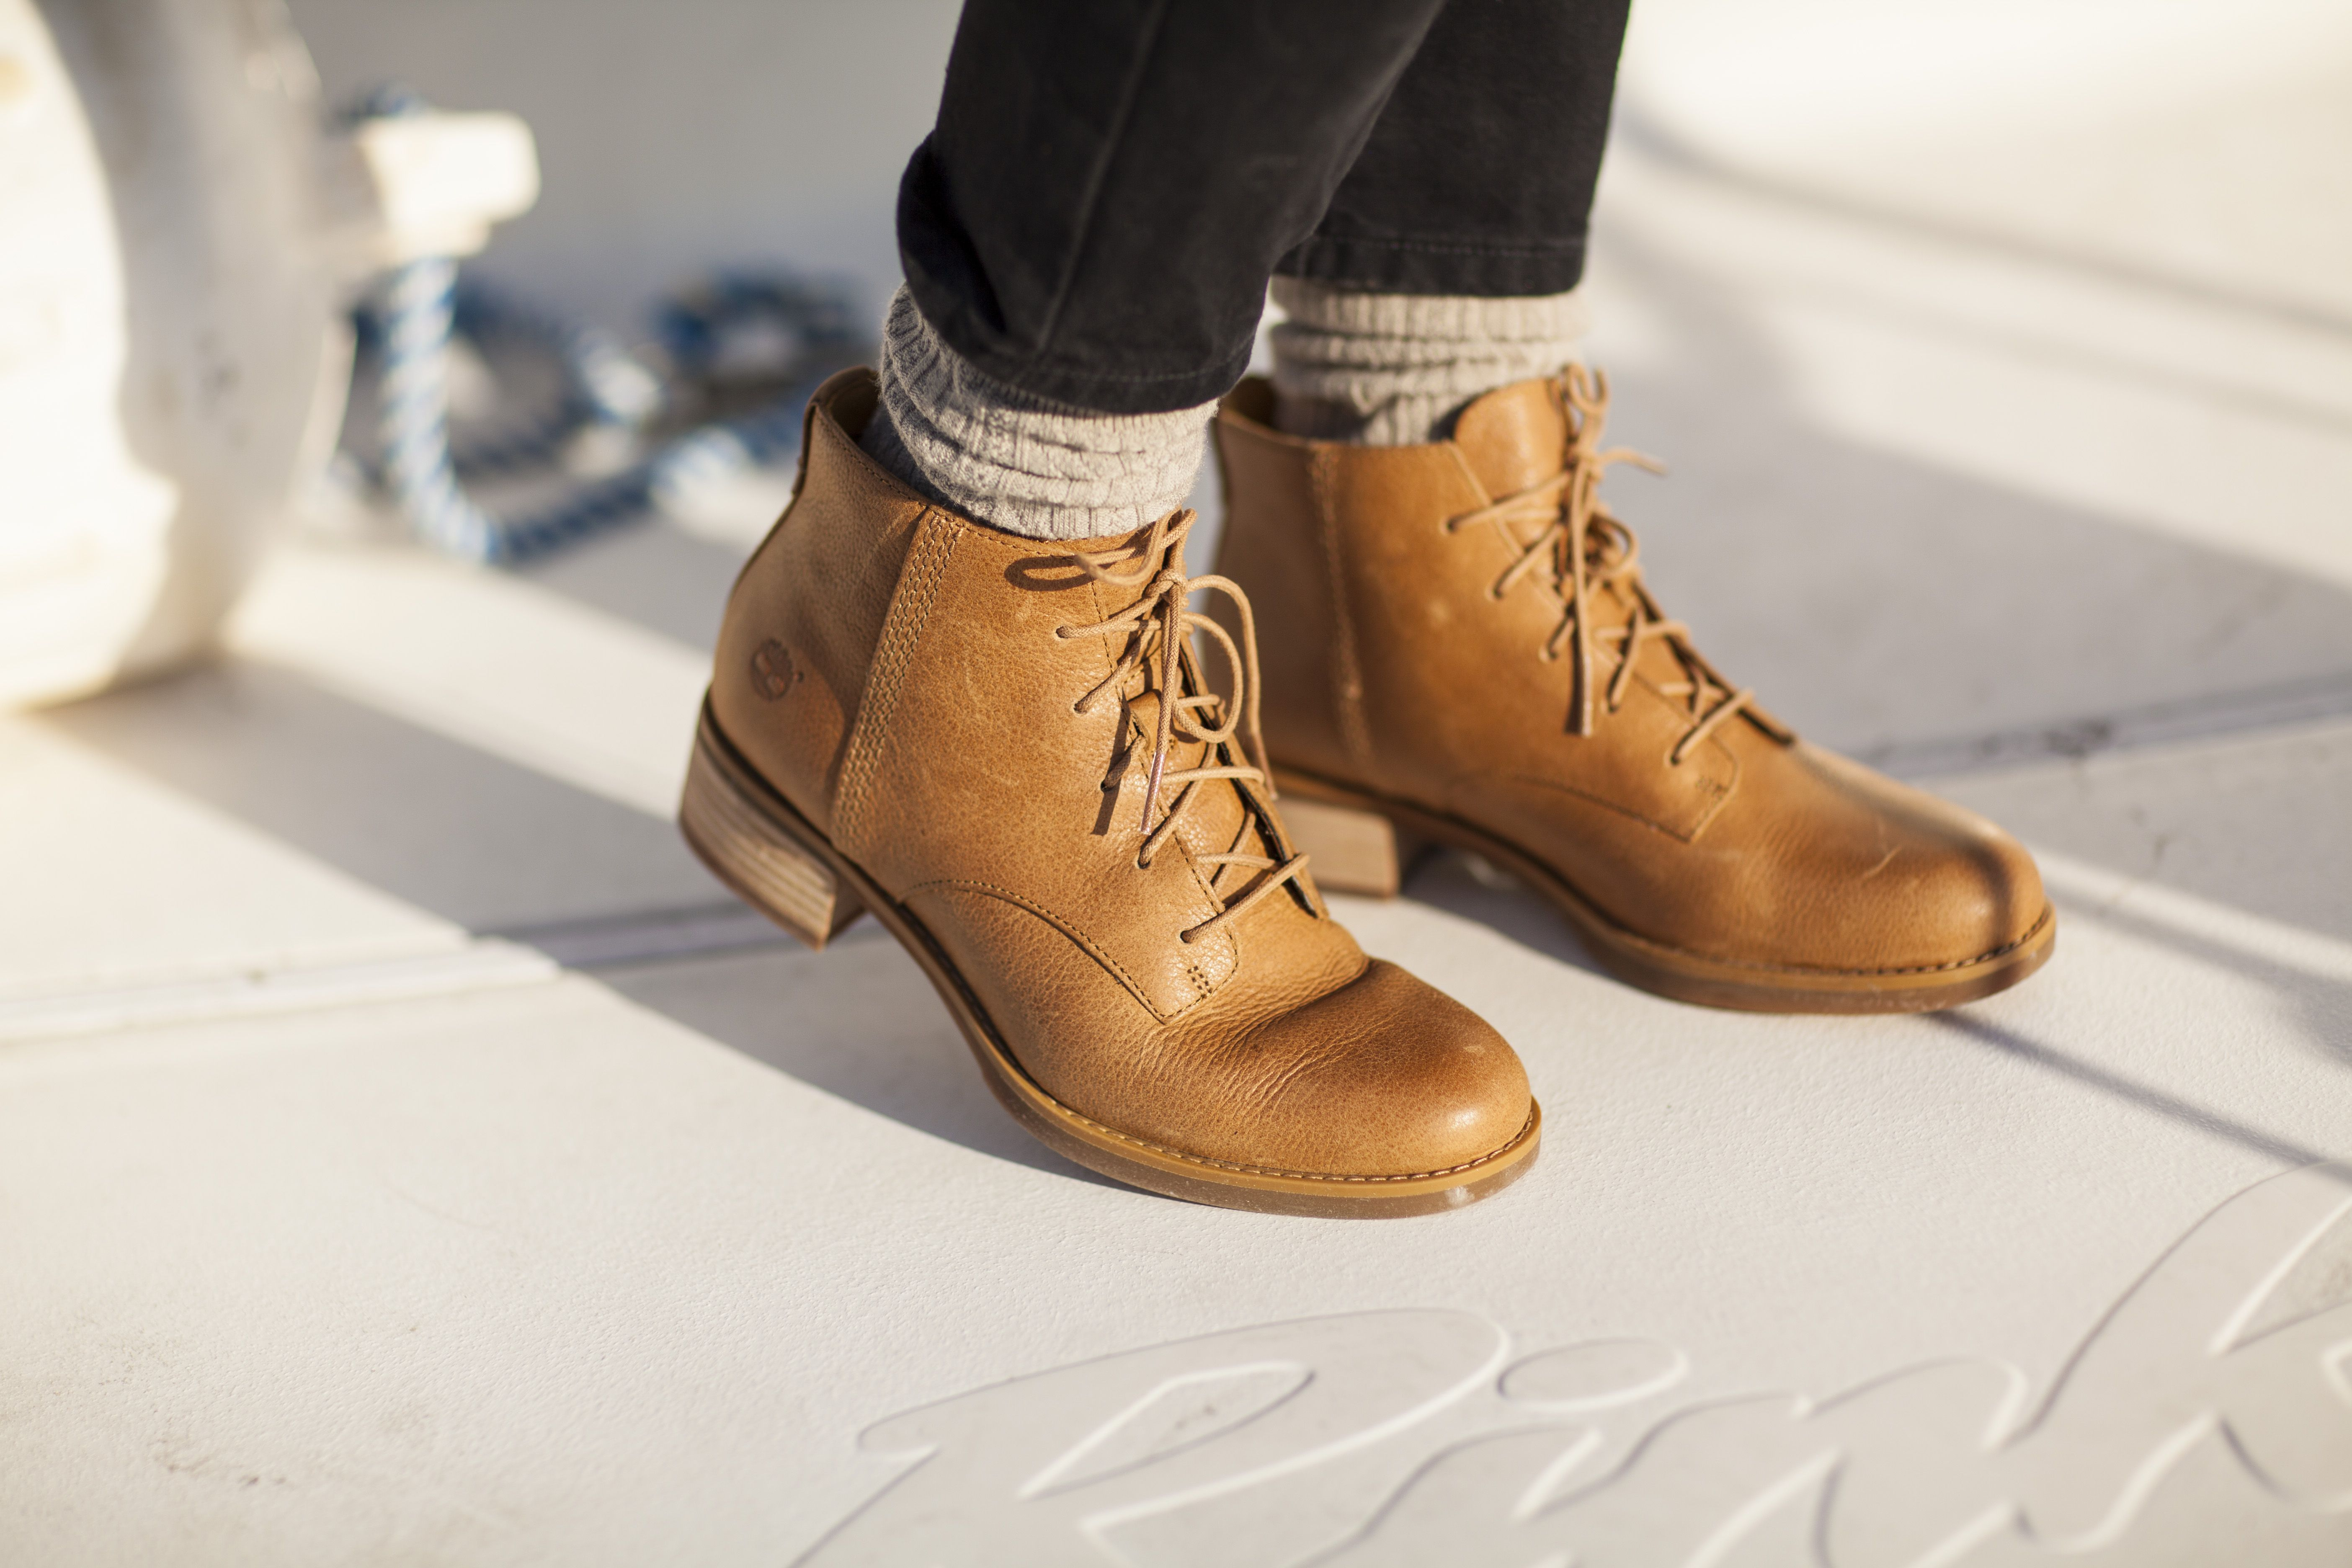 00c7fec0c9f Women's Beckwith Lace-Up Chukka Boots | Welt Women Want | Leather ...